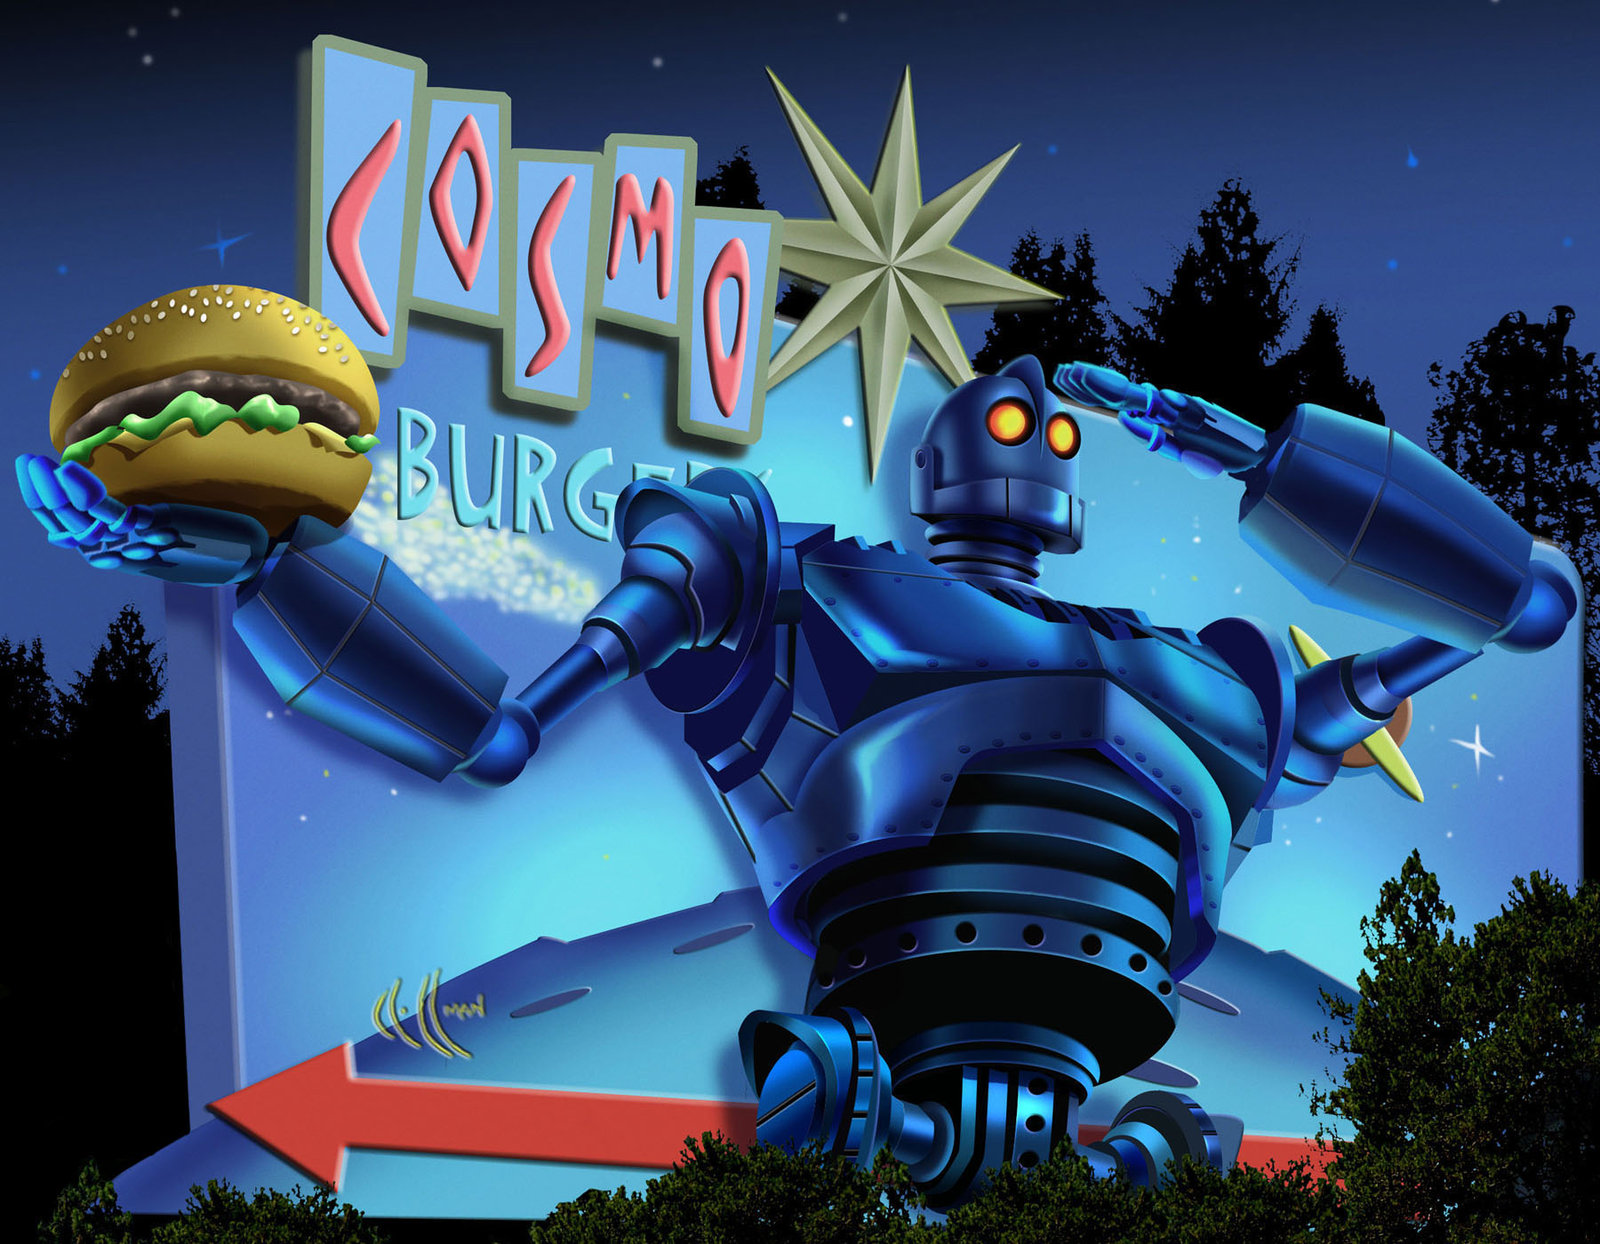 The_Iron_Giant_burger_pitch_wallpaper-by_choffman36